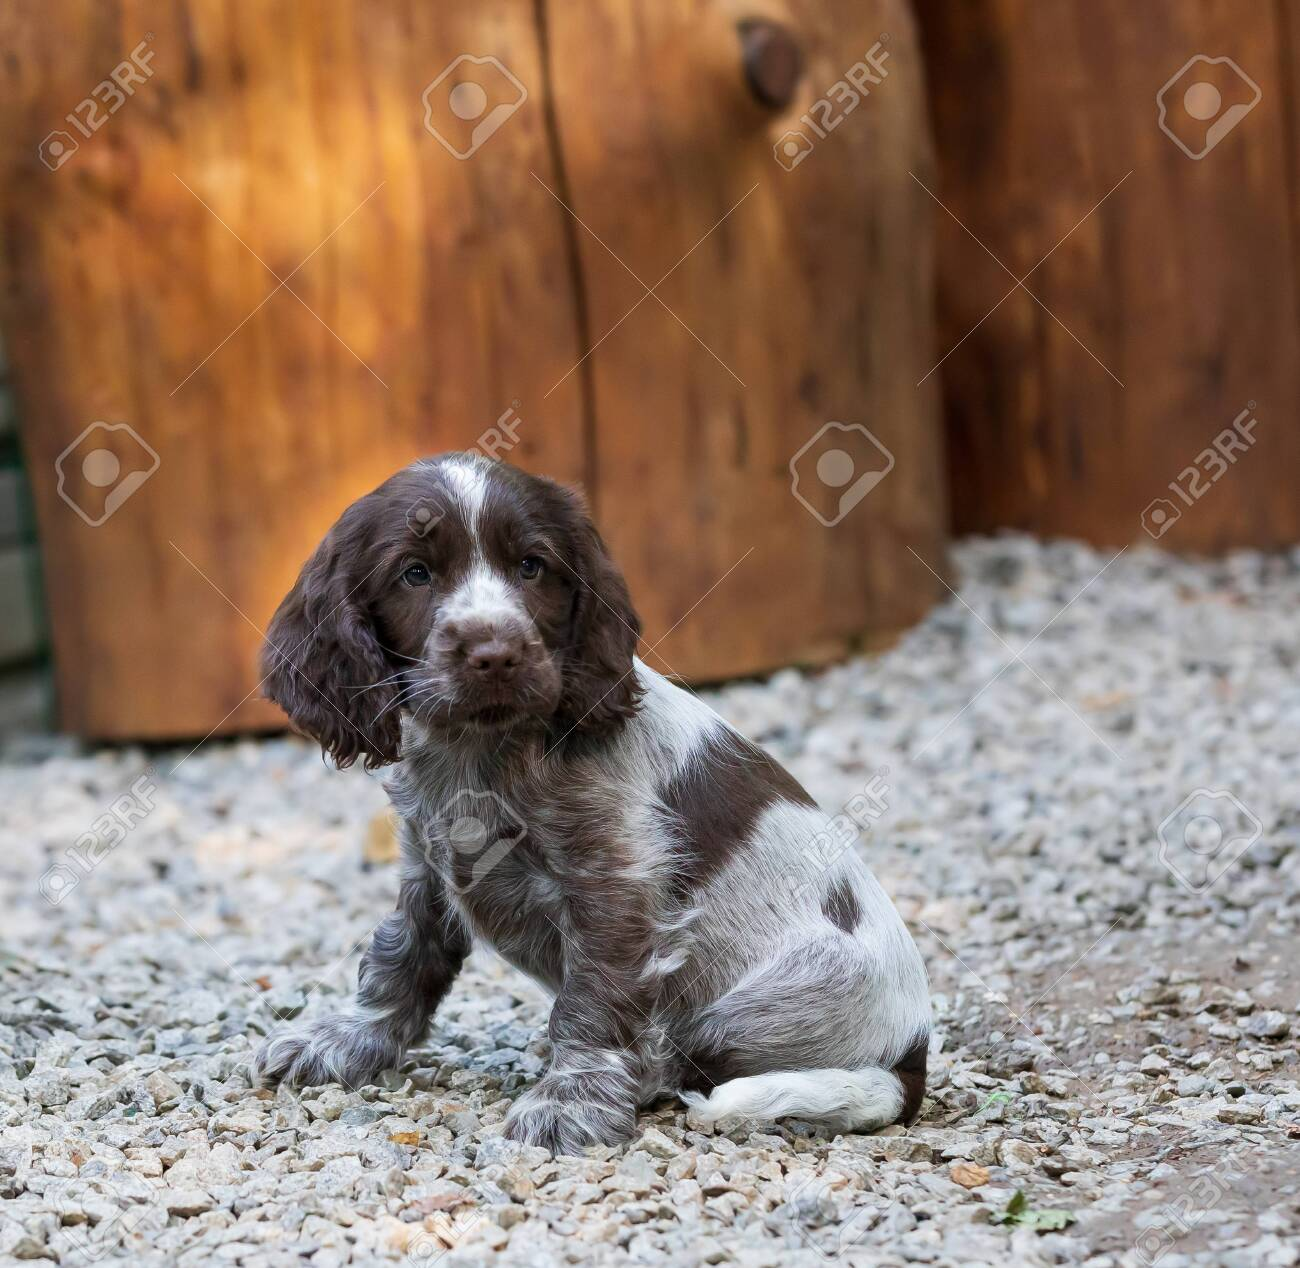 Portrait Of Dog English Cocker Spaniel Portrait Of Dog English Stock Photo Picture And Royalty Free Image Image 149974250